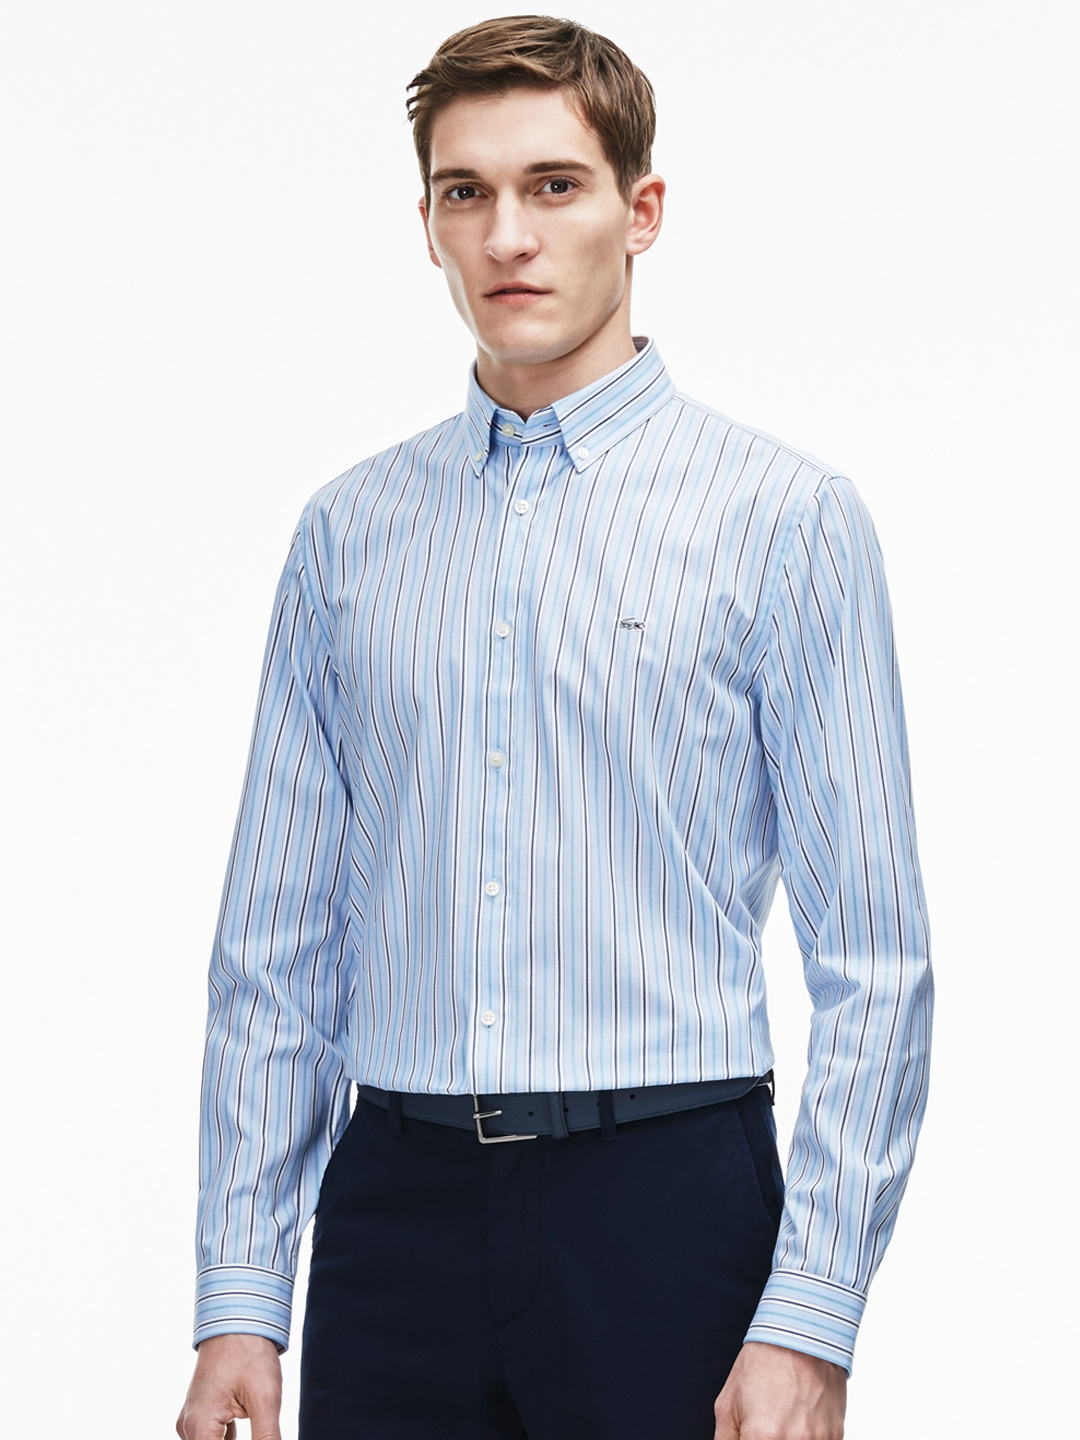 cd7dc98a77e96 Buy Lacoste Blue   White Regular Fit Striped Semiformal Shirt - Shirts for  Men 2019477